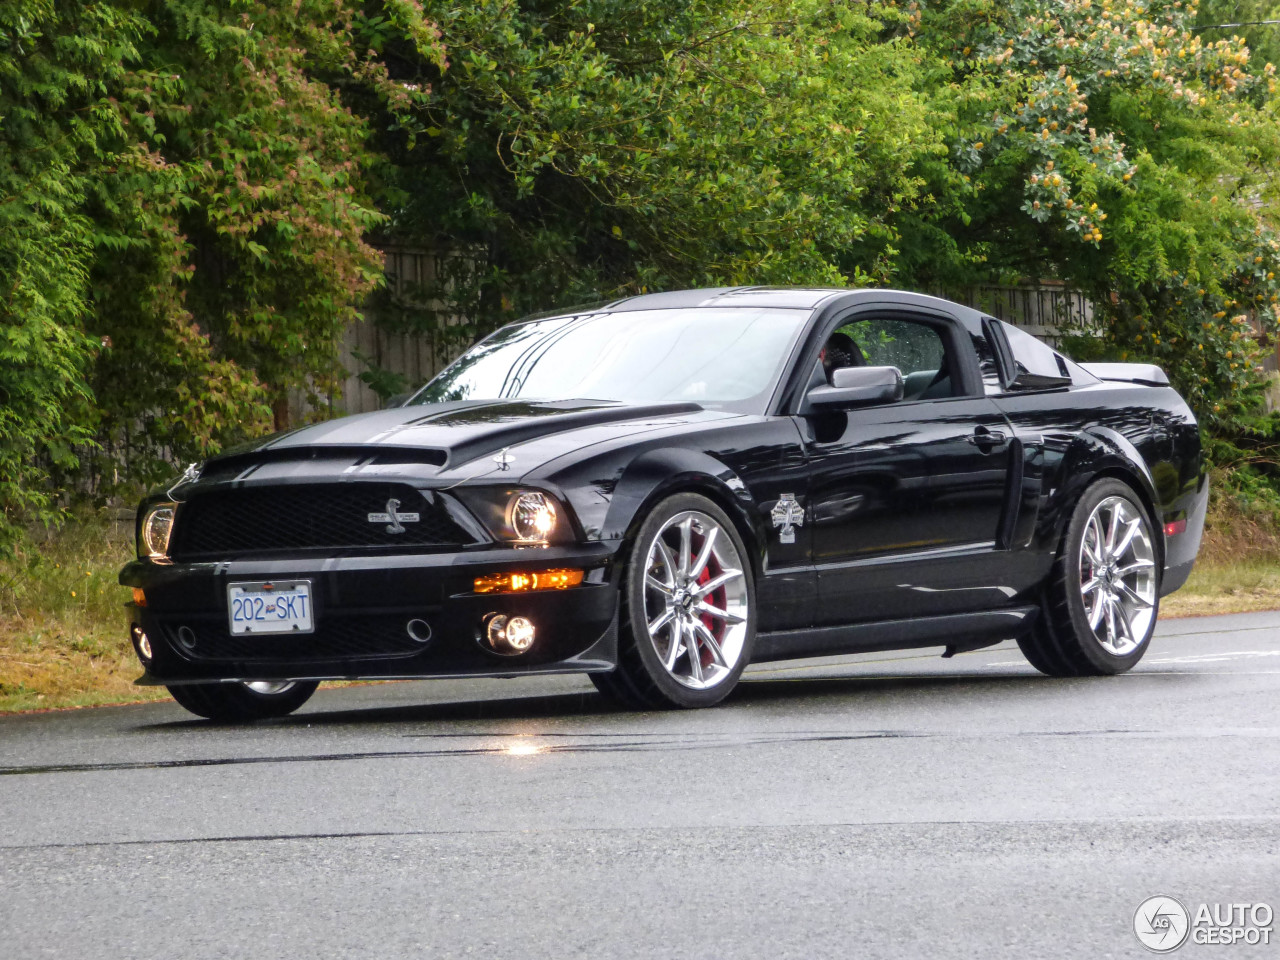 2016 Ford Mustang Shelby GT500 Specs Engine Price